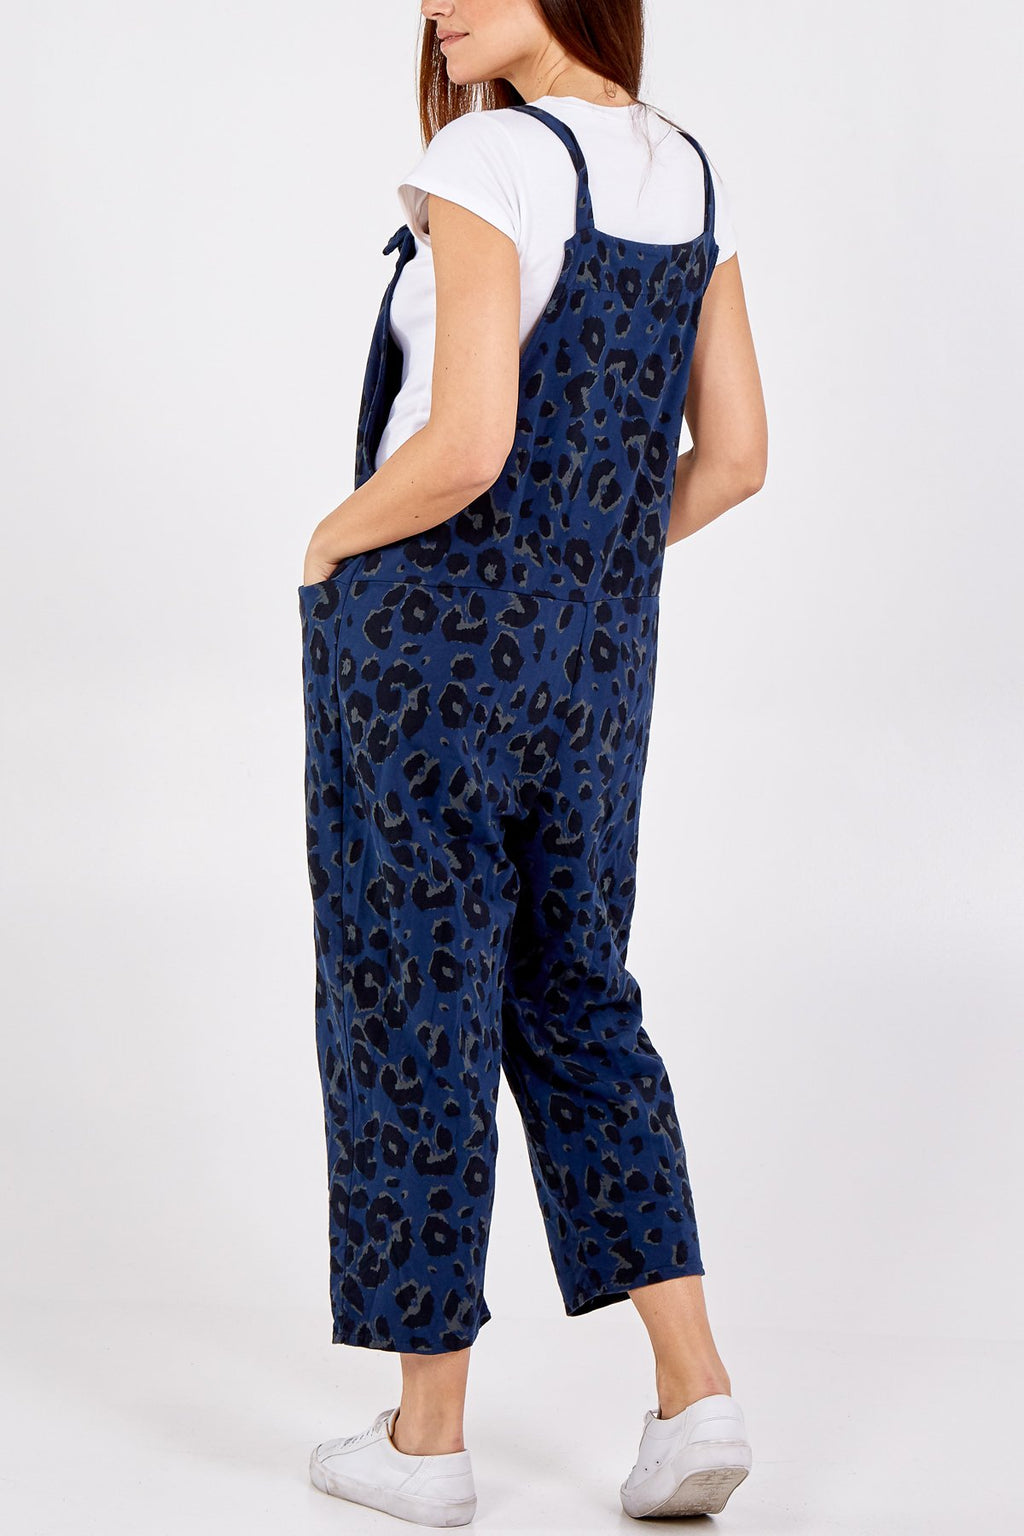 Navy Blue Leopard Tie Slouch Dungarees